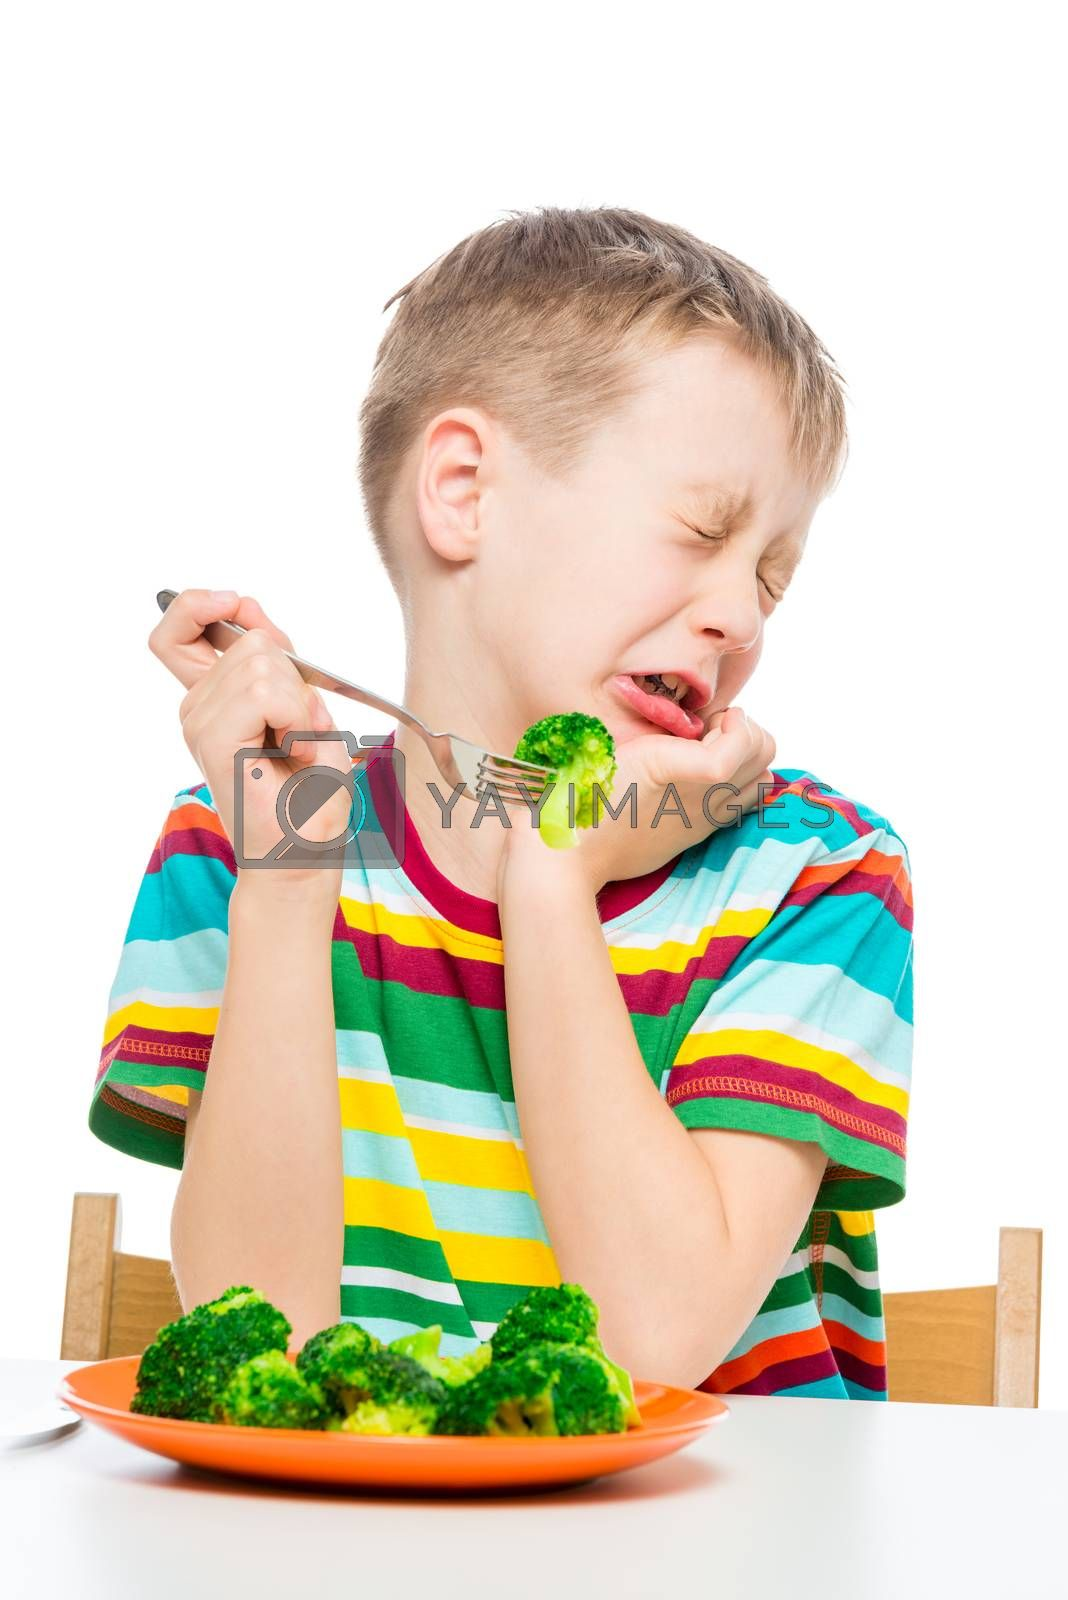 Emotional portrait of a child who does not like broccoli, the portrait is isolated